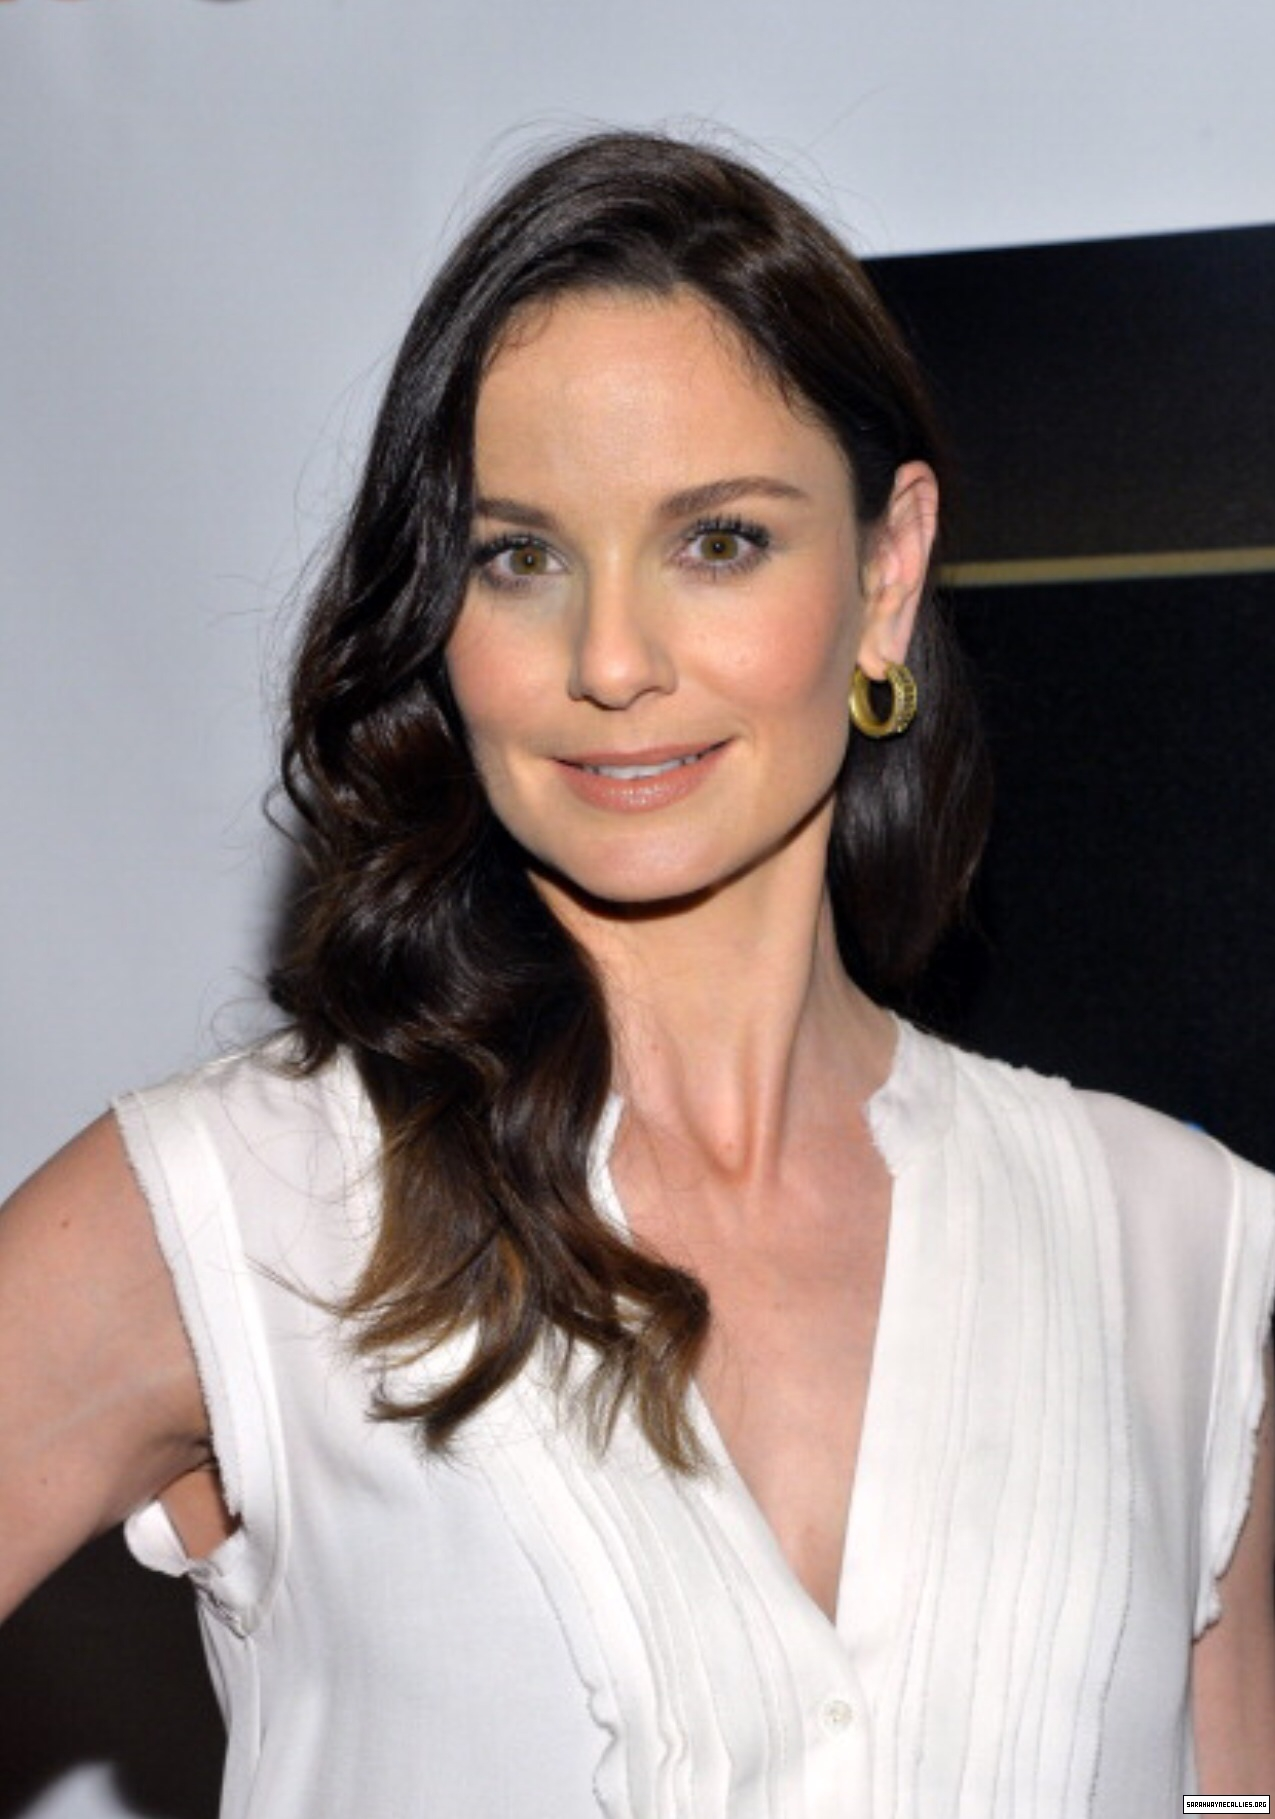 020 - Please Don't Curse at Sarah Wayne Callies if You See Her in Person